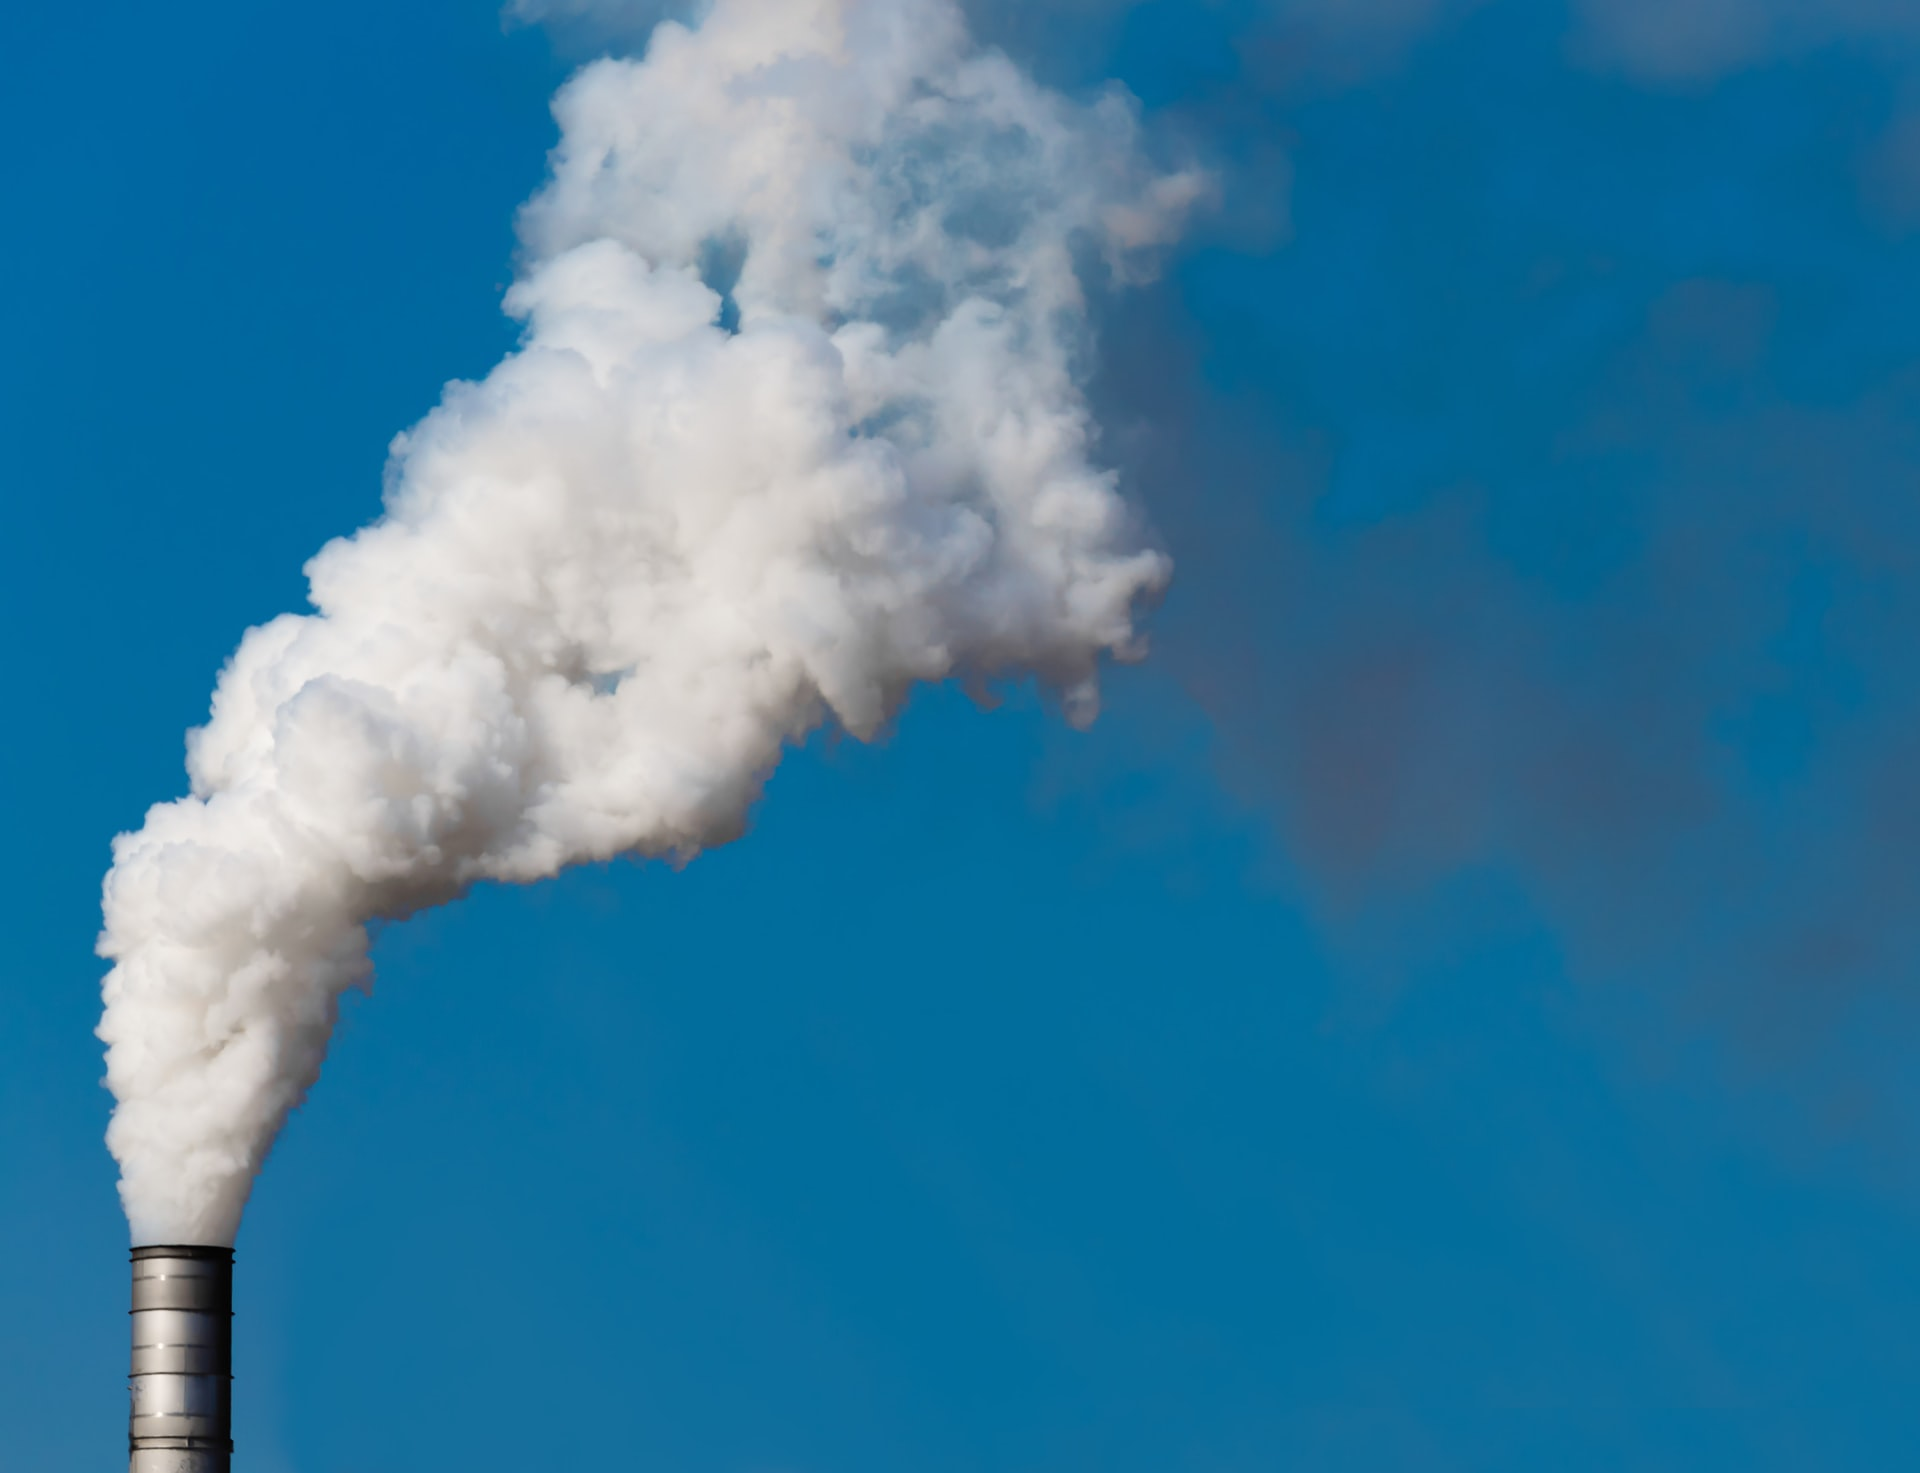 Carbontech is Becoming a Critical Component of the Oil and Gas Industry's Future